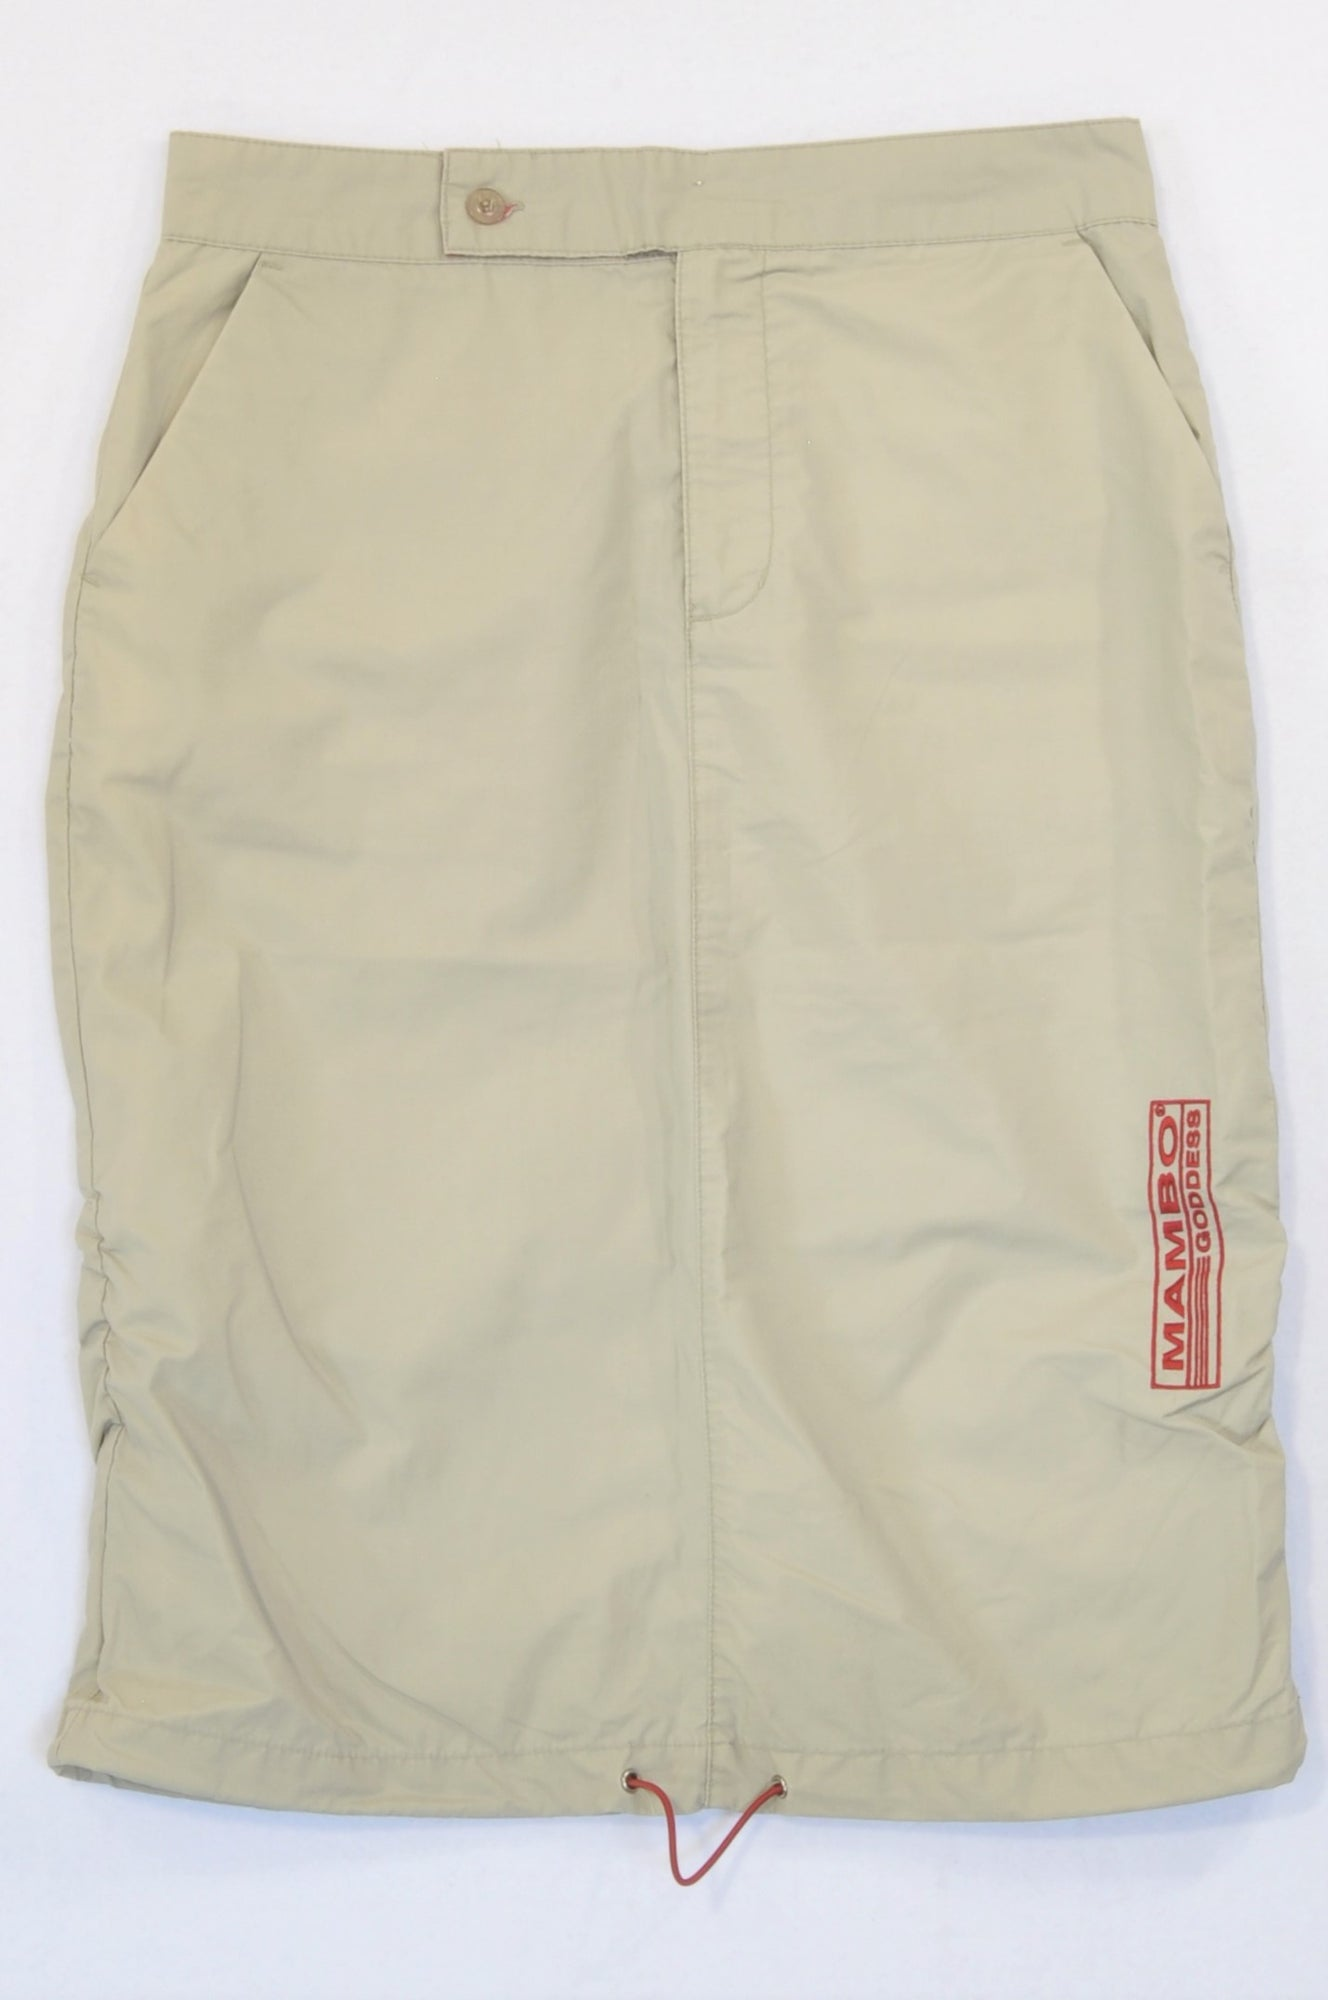 Mambo Goddess Beige Logo Embroidered Cargo Skirt Women Size 8